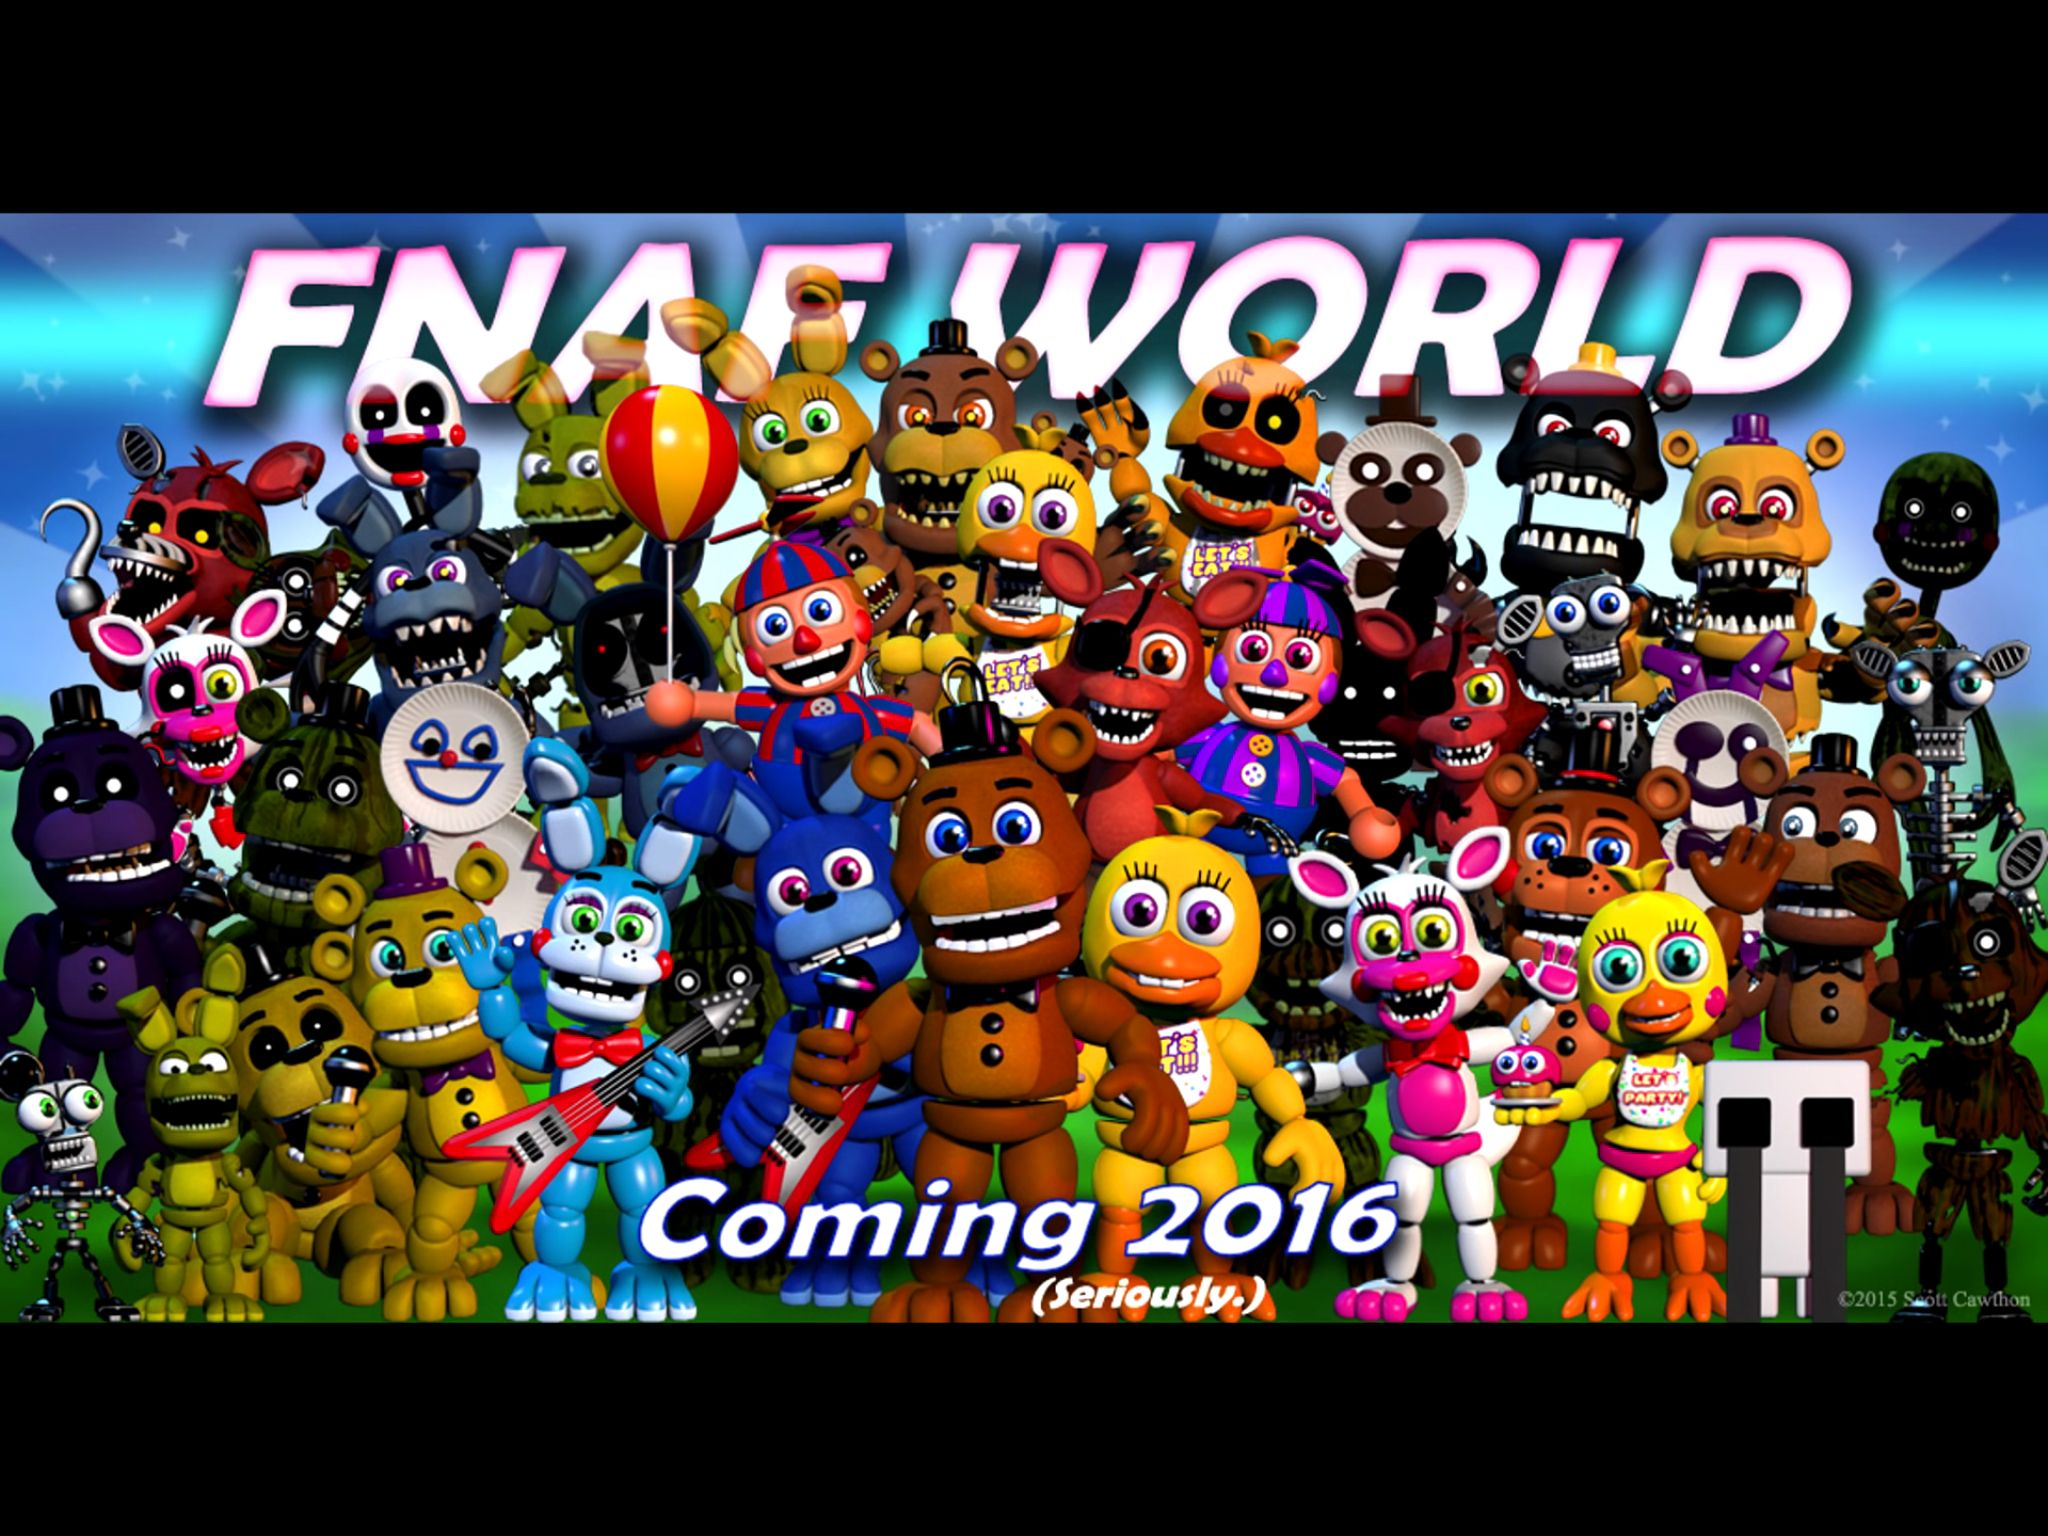 Attention Fnaf Fans The Final Picture Is Here All Of